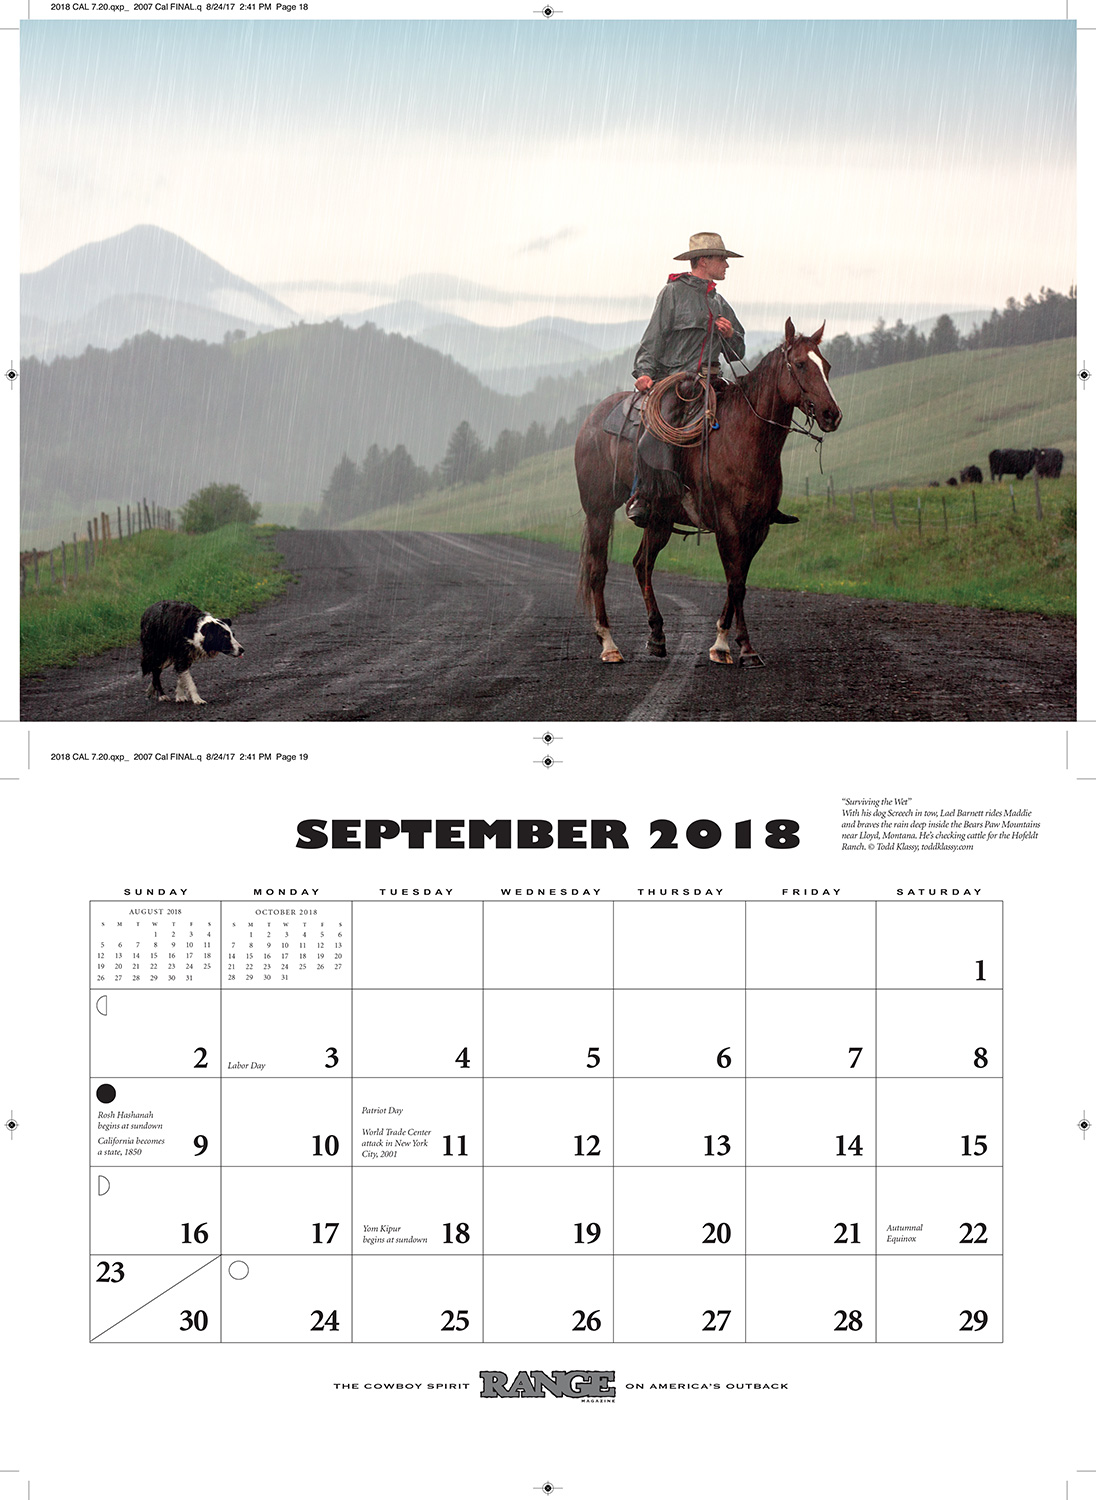 Range-Magazine-2018-Calendar-September-20170824-Small.jpg